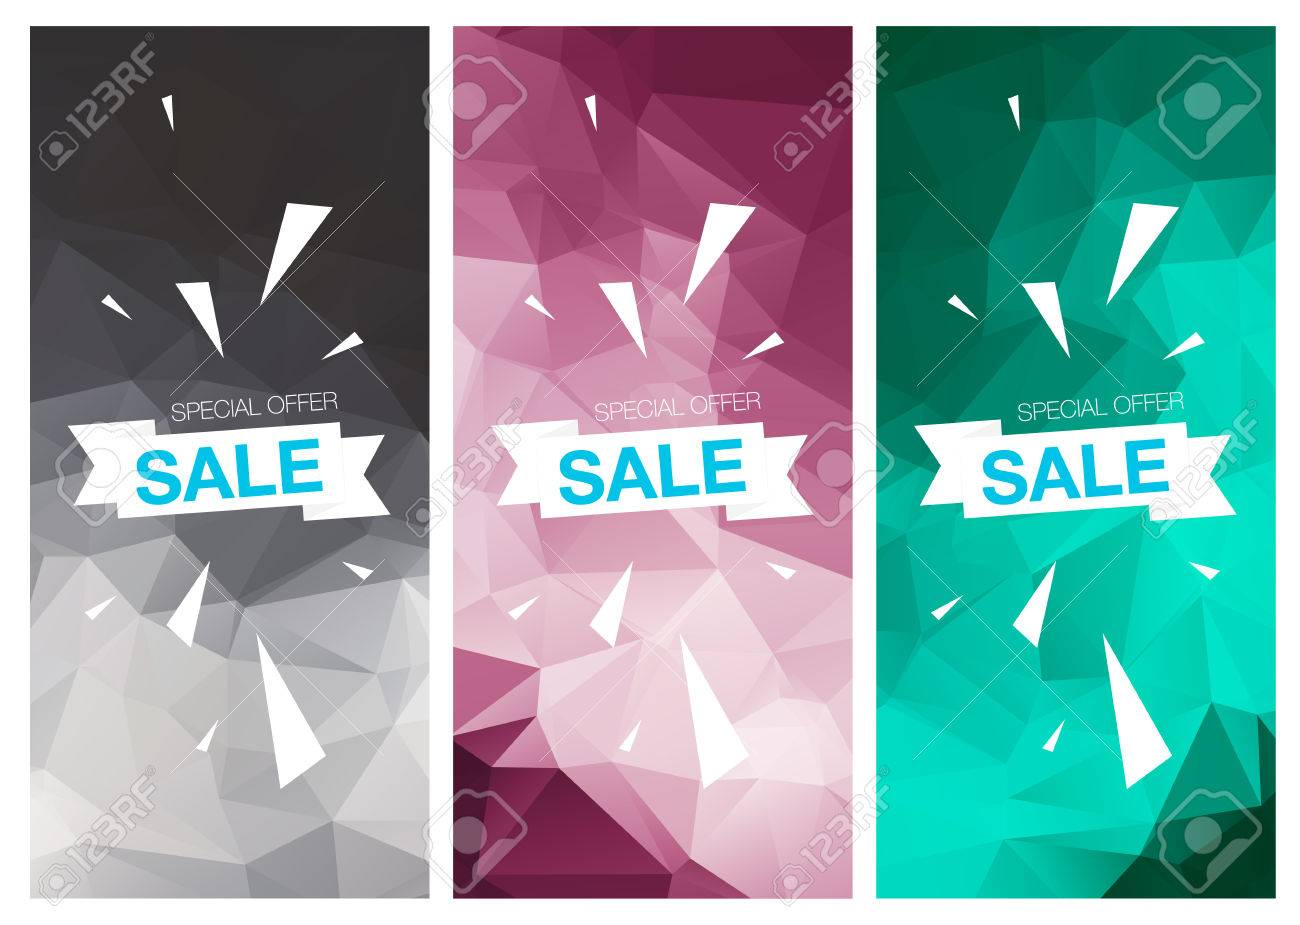 super special offer web banner templates on colored super special offer web banner templates on colored background stock vector 54045932